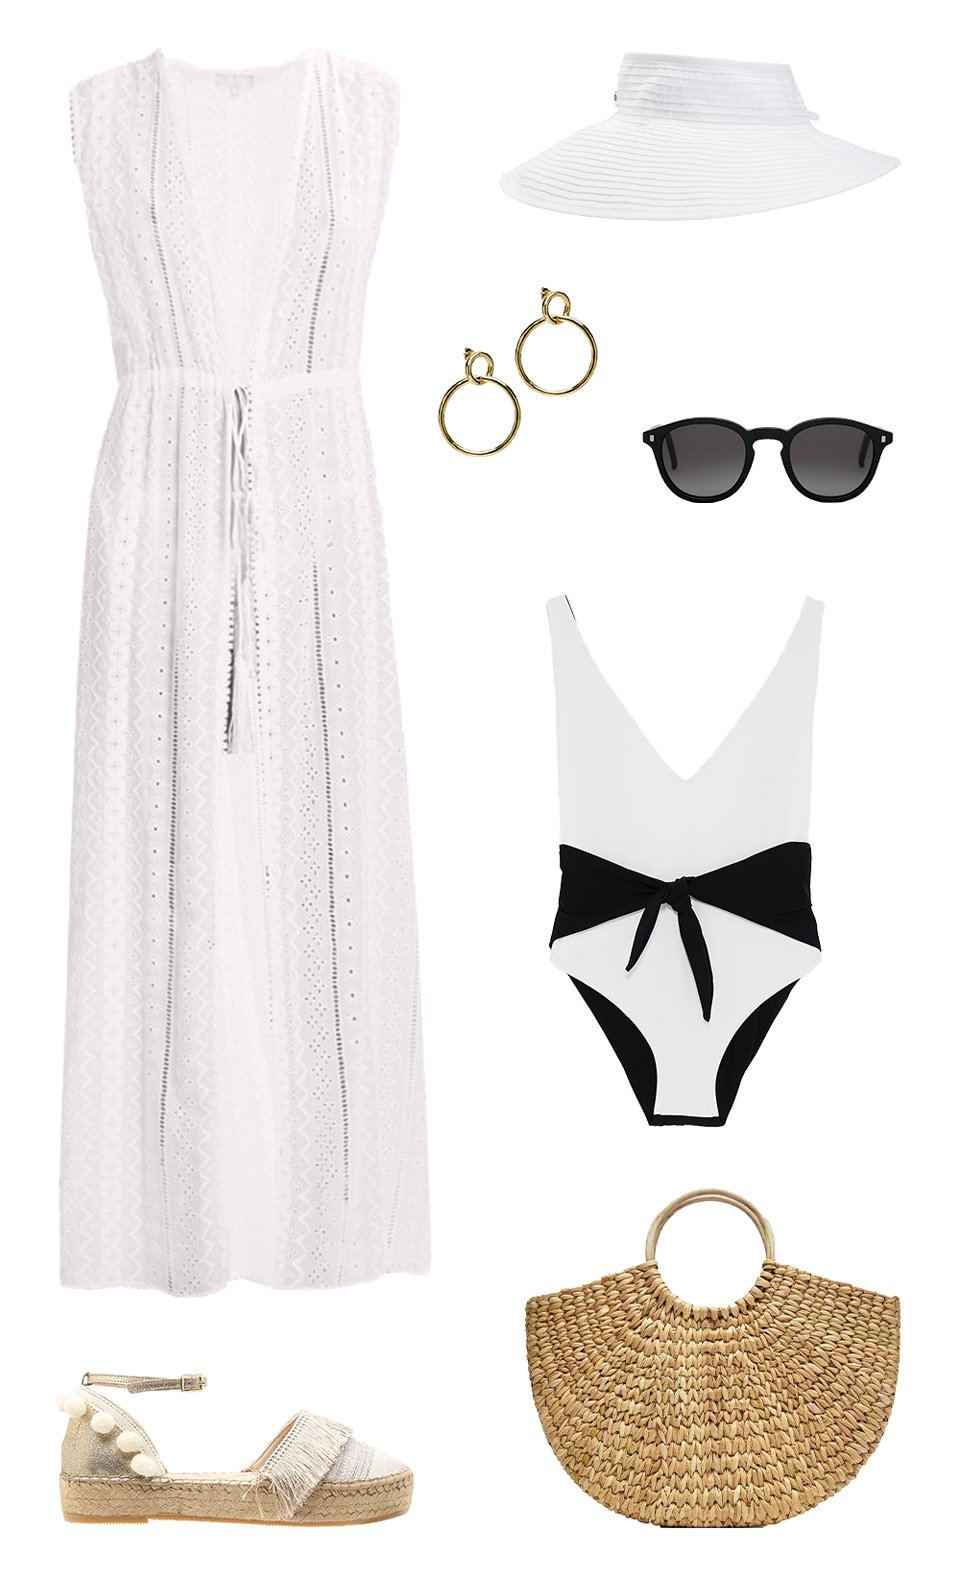 A stylish outfit - the perfect dress for the Italian Riviera